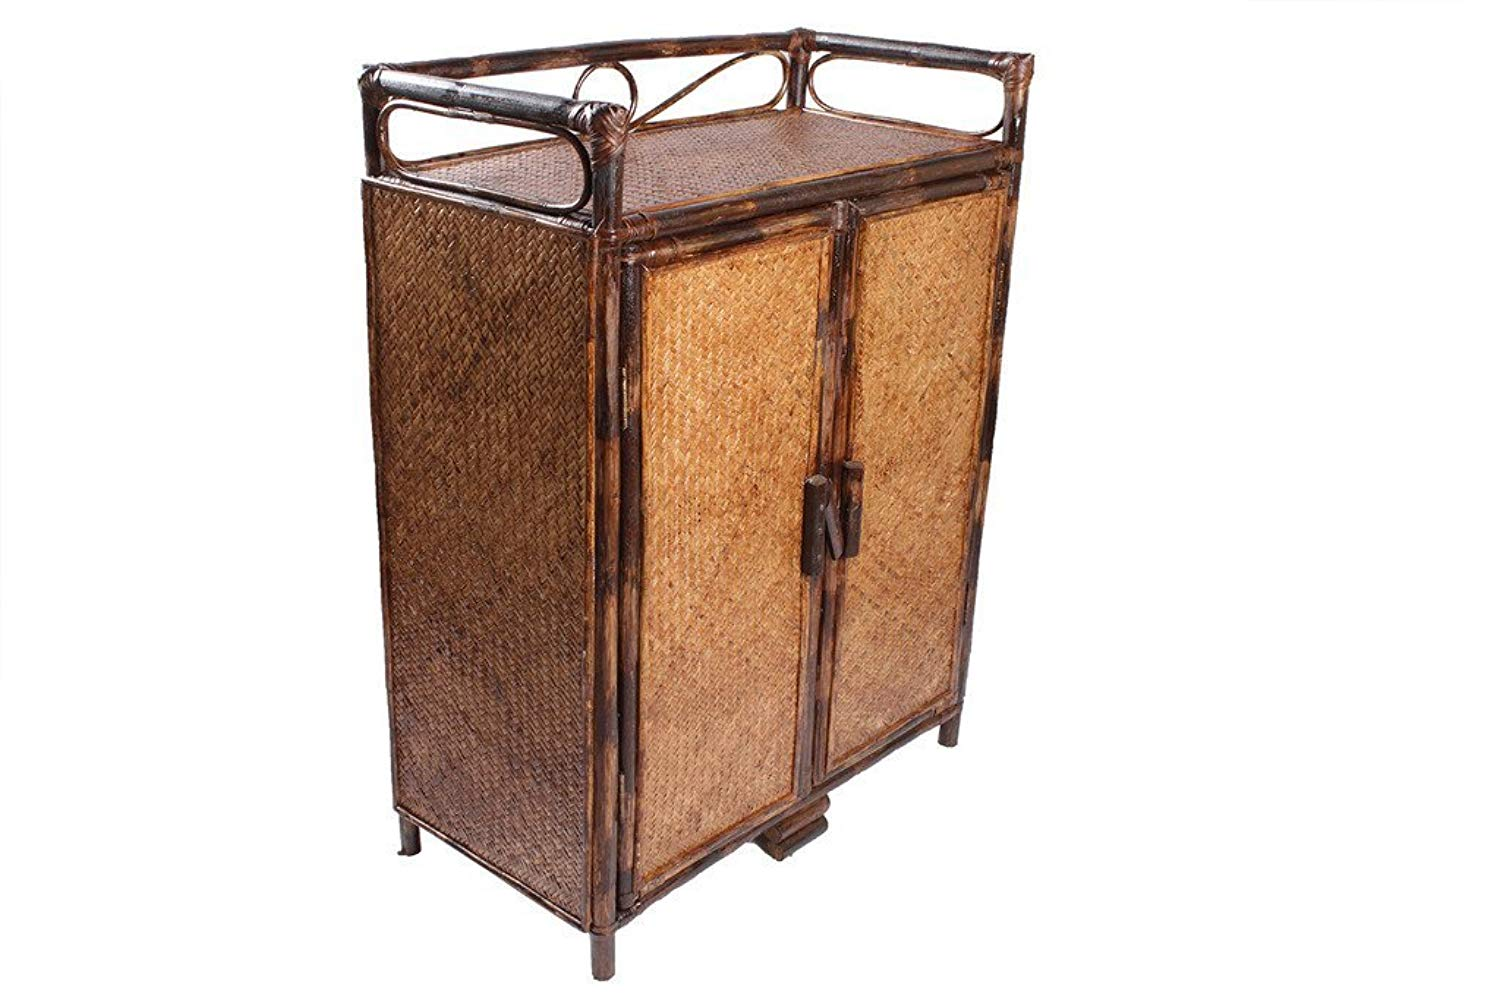 IRA Rattan Cabinet Rack - IRA Furniture